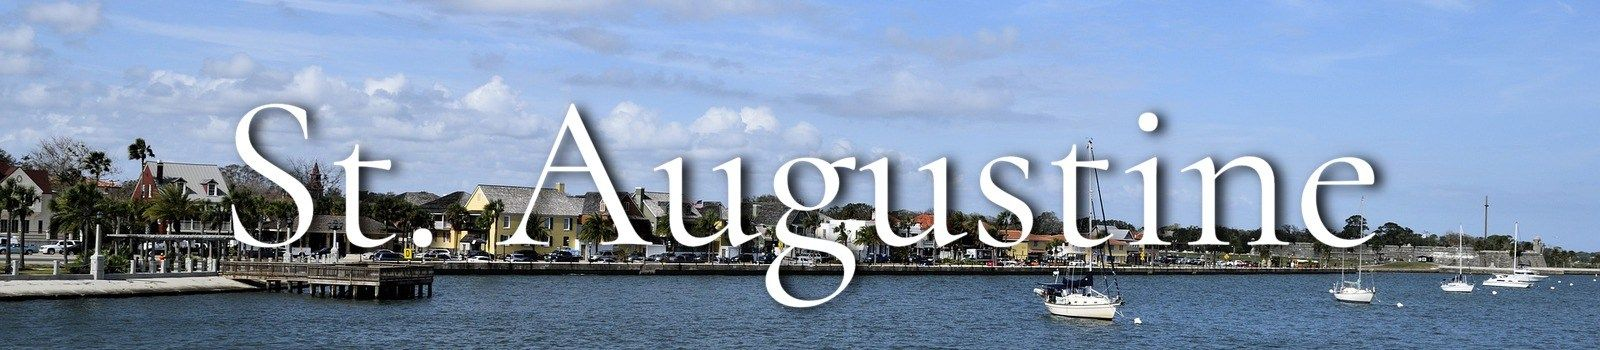 Top 10 Things to Do in St. Augustine Banner